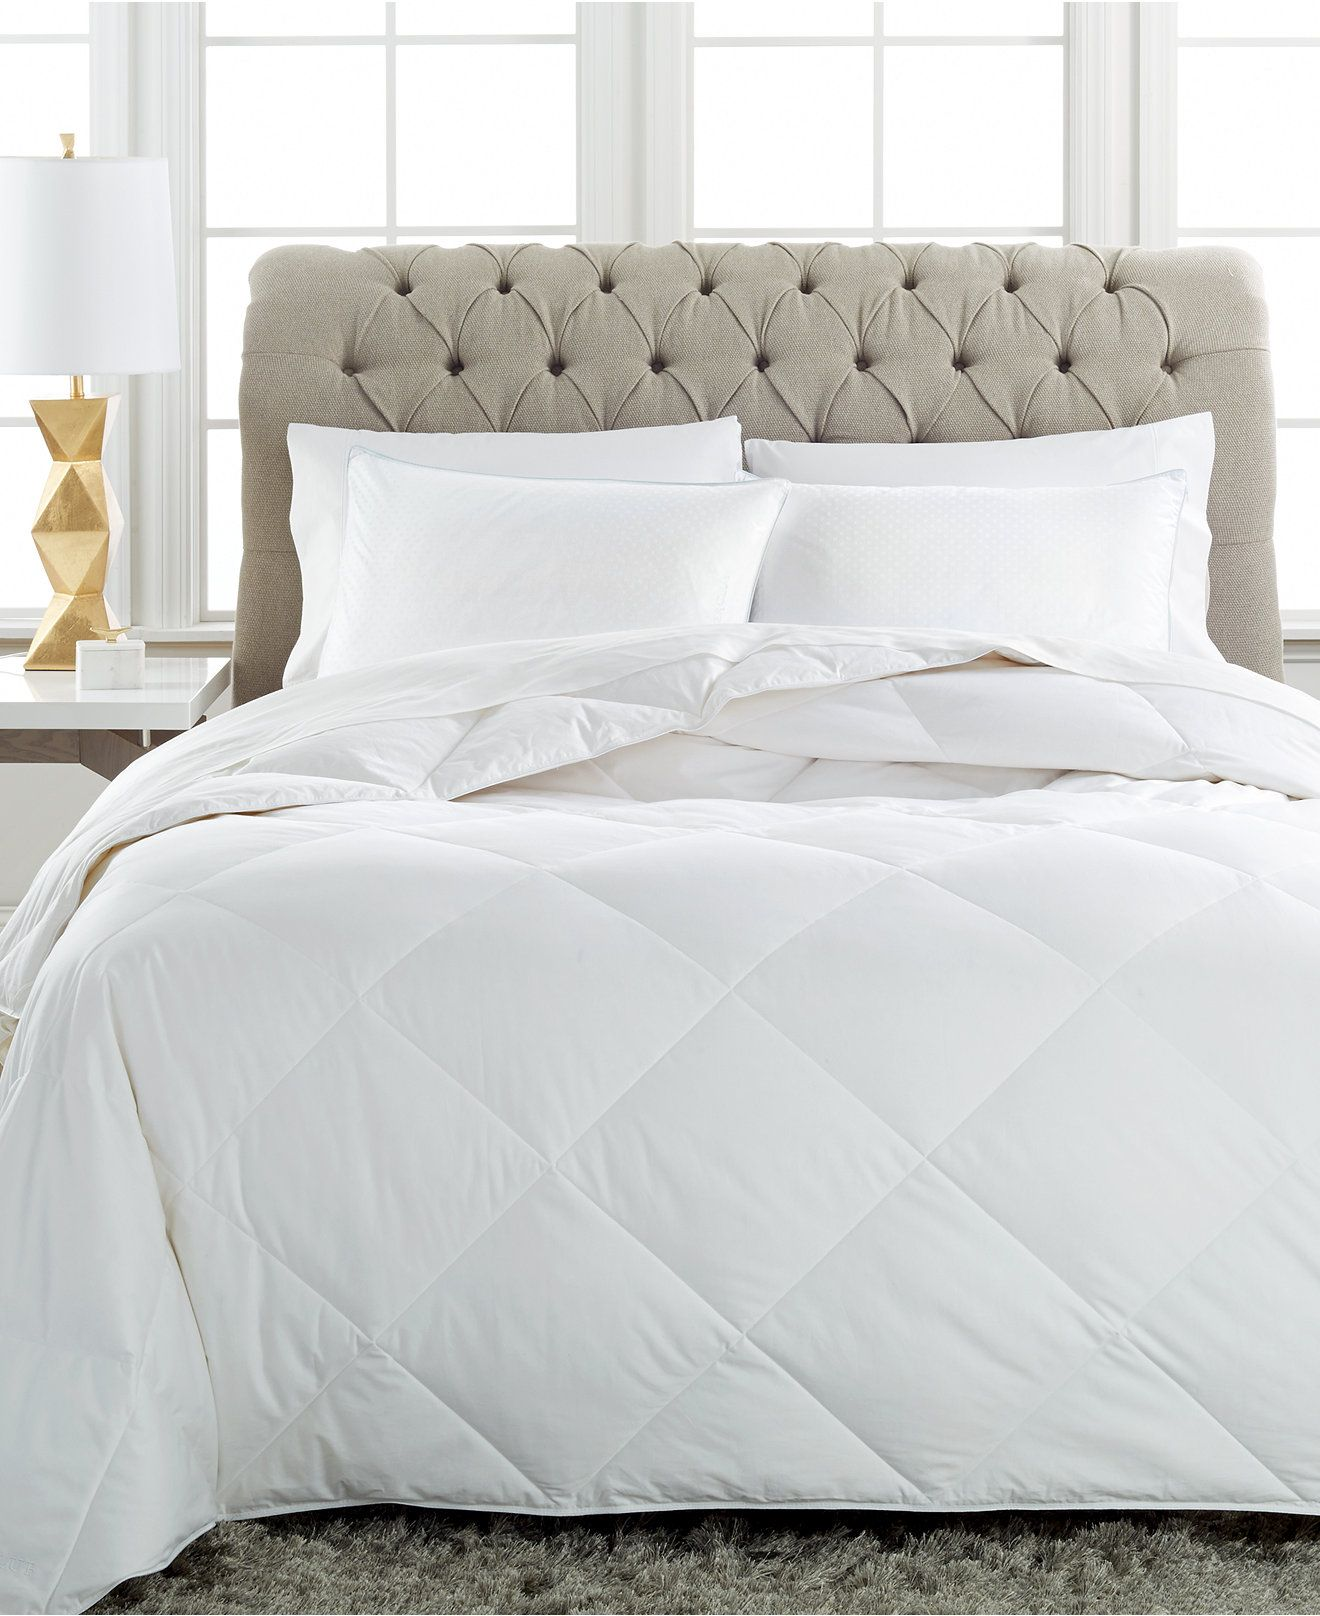 Charter Club Vail Collection Level 1 Extra Light Warmth Down Comforters Alternative Bed Bath Macy S